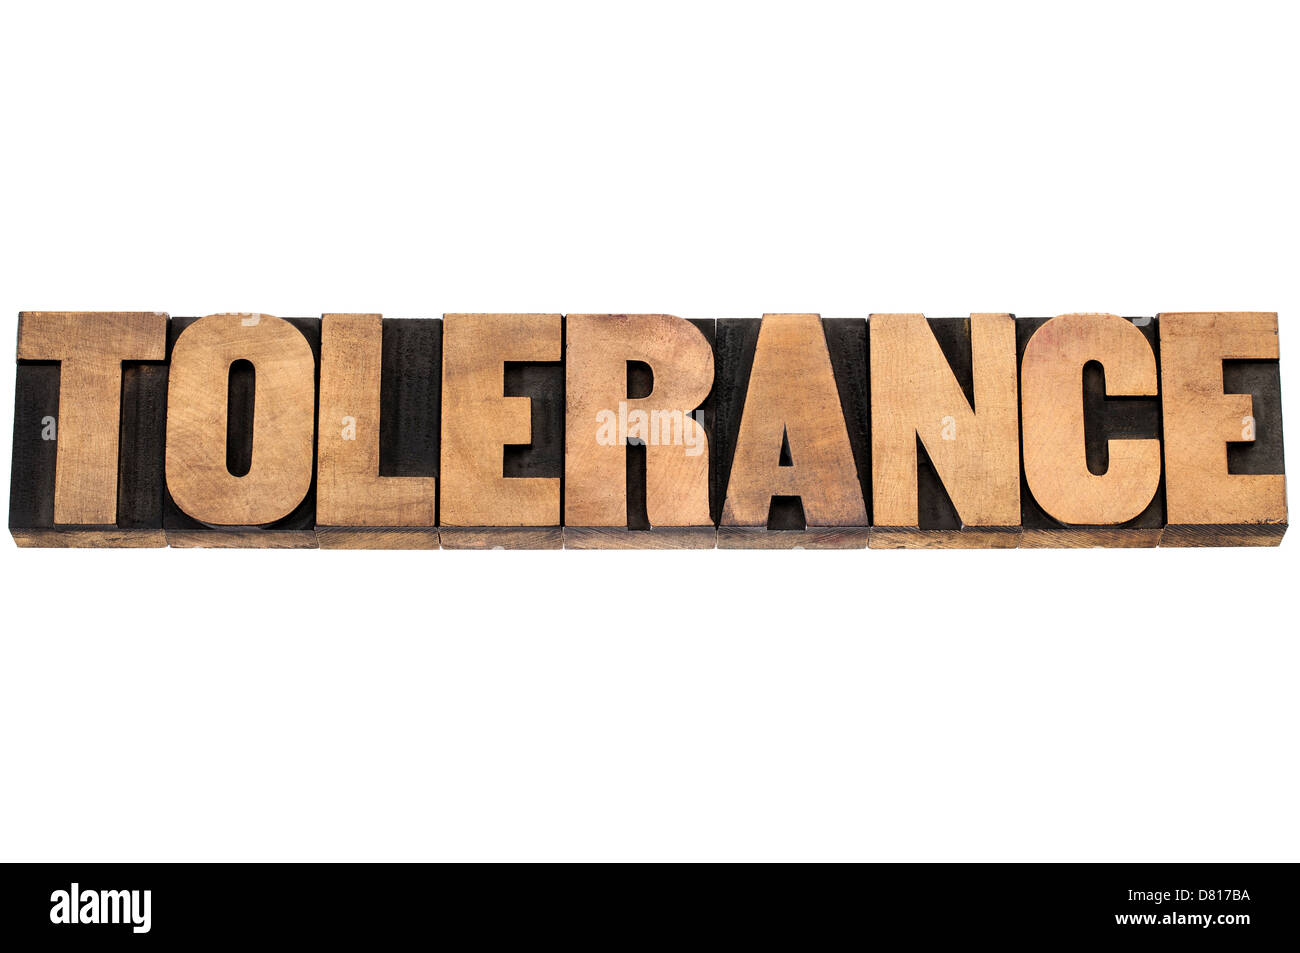 tolerance word - isolated text in letterpress wood type printing blocks - Stock Image